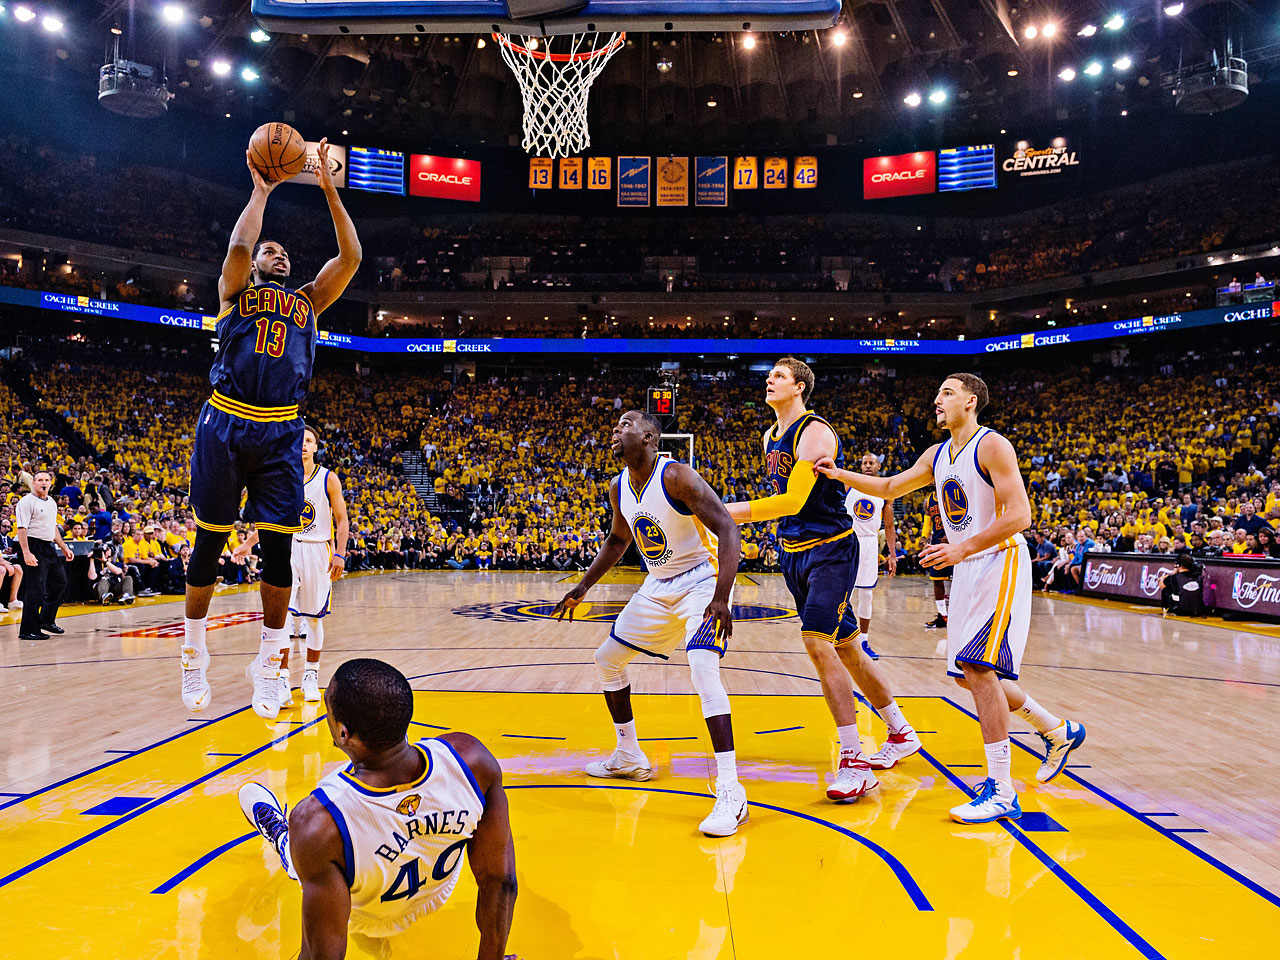 Tristan Thompson was Cleveland's second-leading scorer -- 19 points in 40 minutes of action.